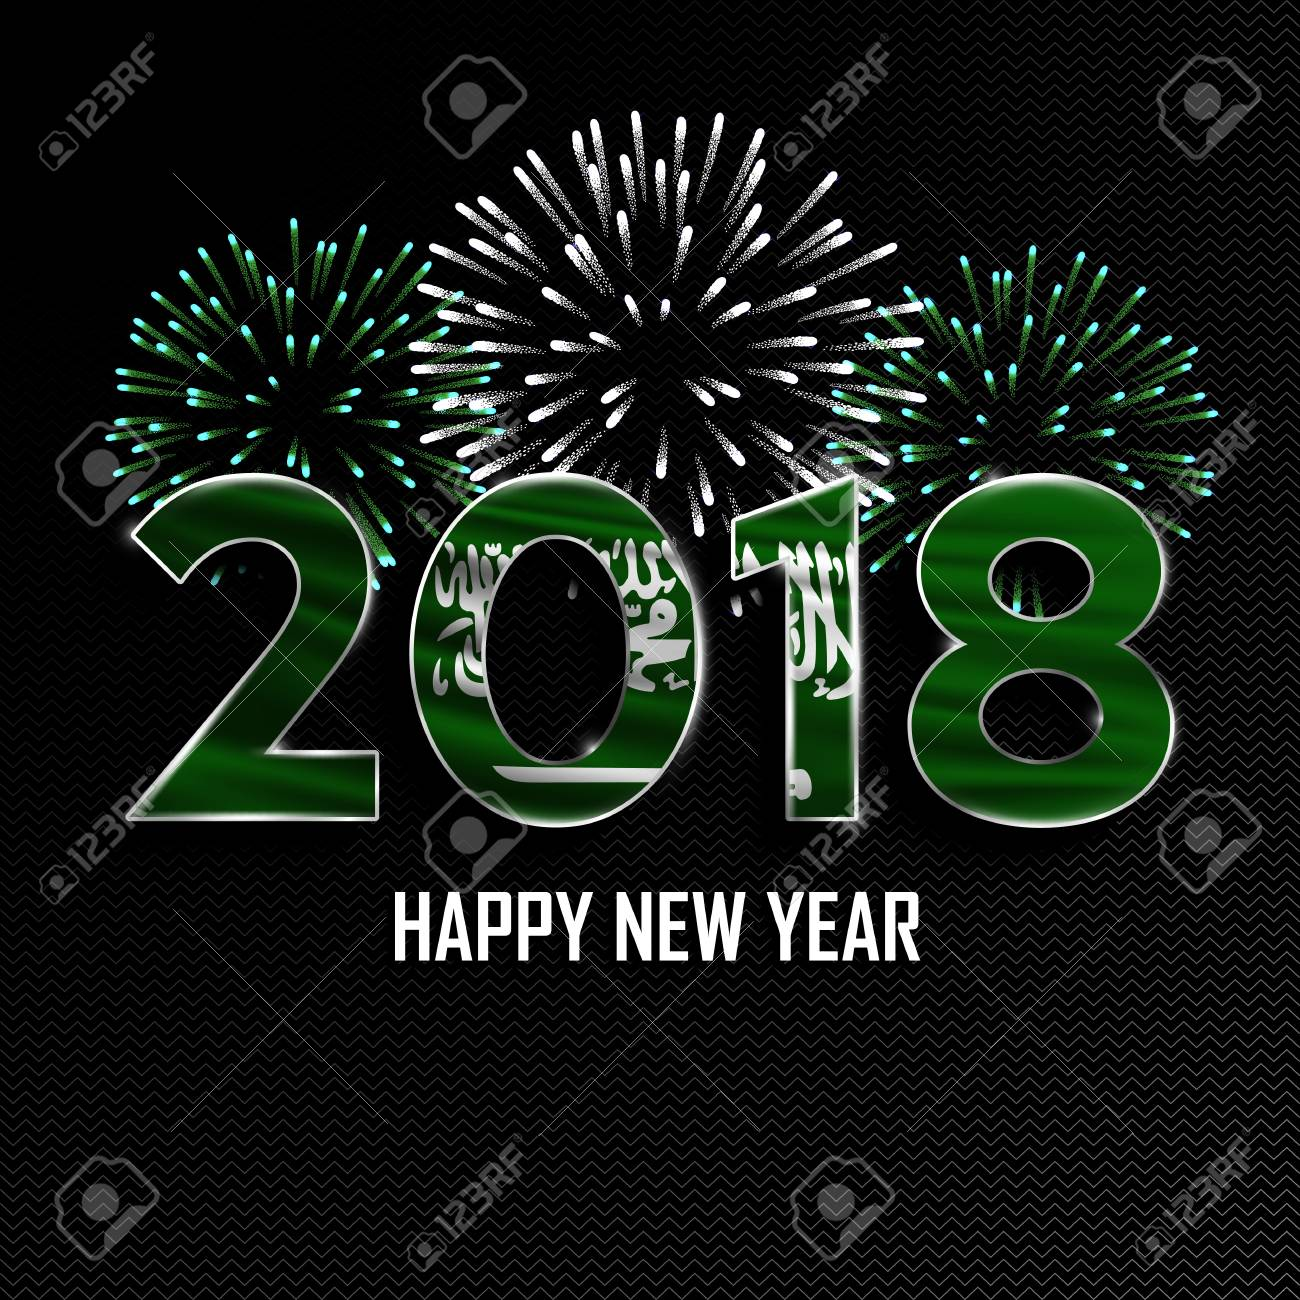 happy new year and merry christmas 2018 new year background with national flag of saudi